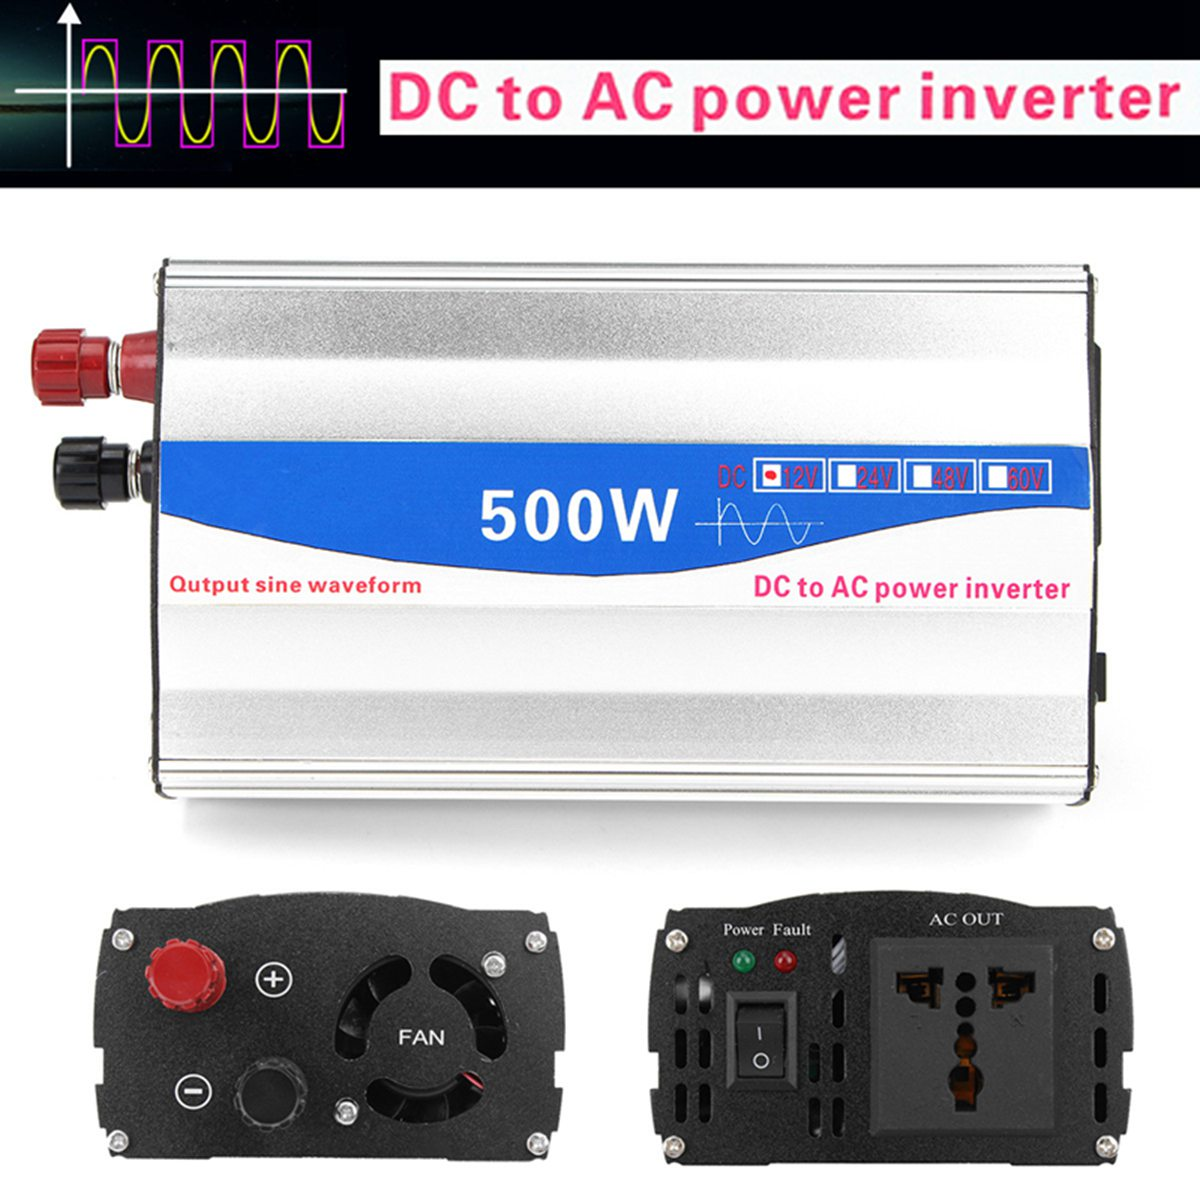 500W DC 12V to AC 220V Car Inverter Transformer Pure Sine Wave Car Power Inverter Charger Converter Car Vehicle Power Supply 1500w car power inverter tyn 1500nb inverter auto inverter car power inverter vehicle power supply charger converter adapter